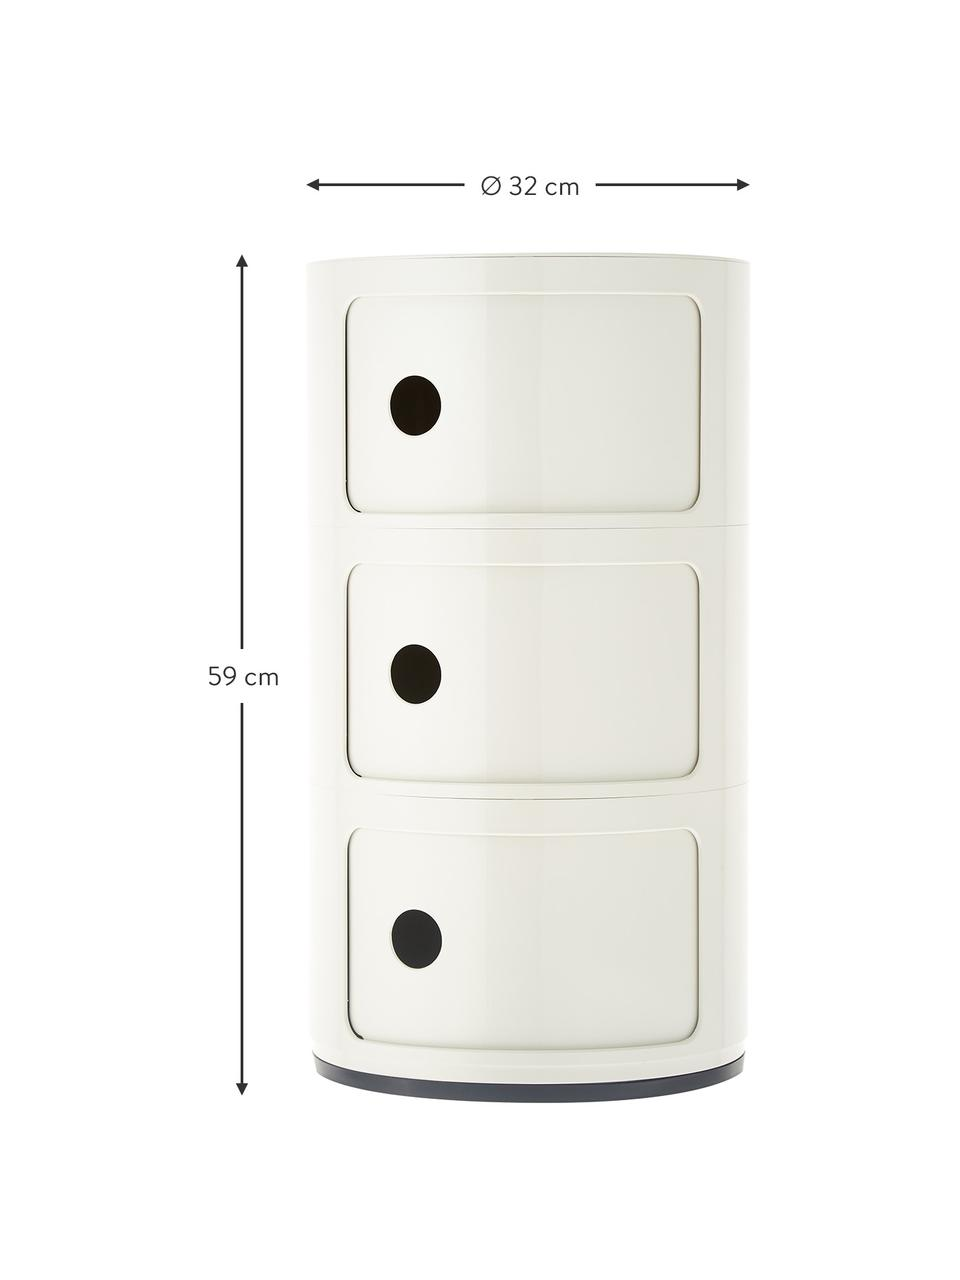 Table d'appoint design 3 compartiments Componibile, Blanc